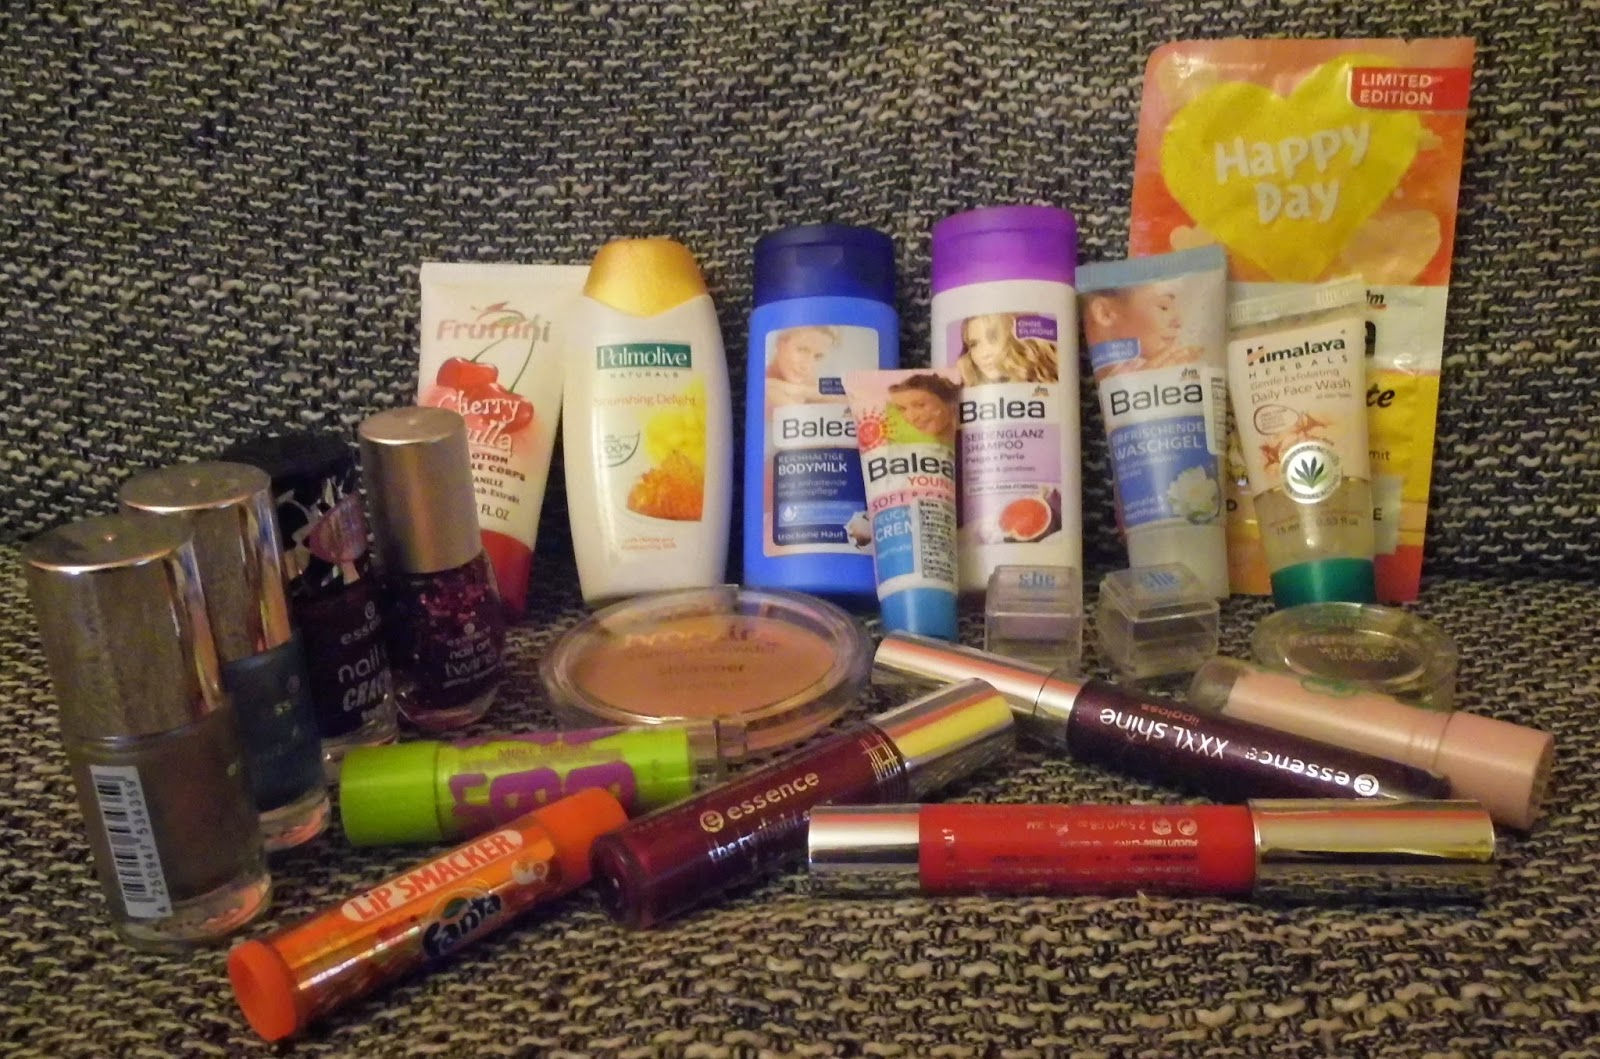 500-facebook-likes-and-other-followers-beauty-make-up-skin-care-giveaway-balea-essence-catrice-etc